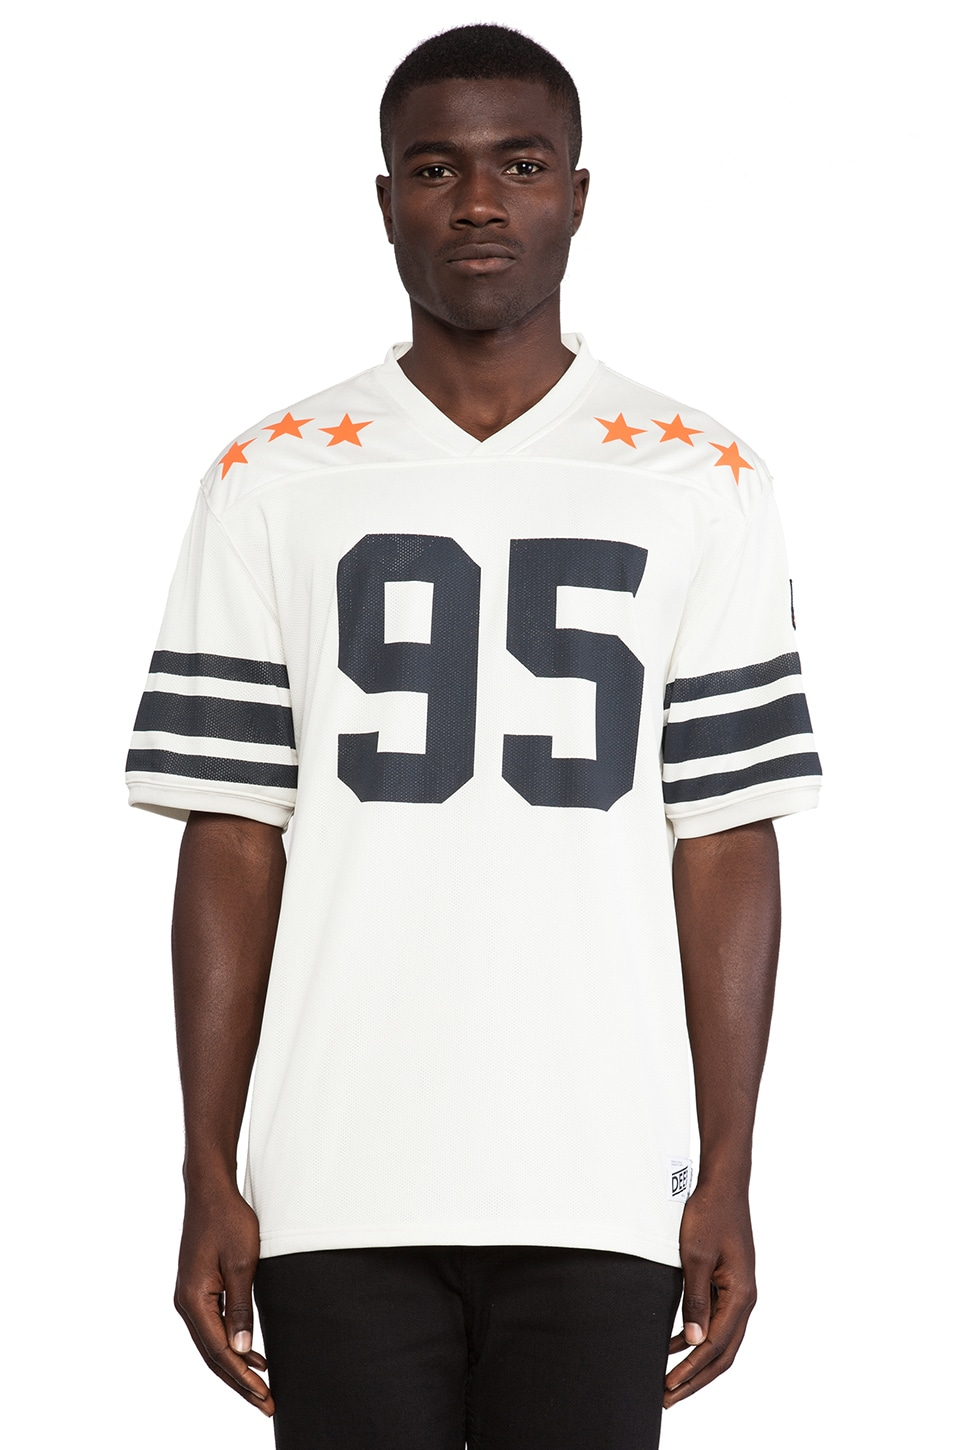 10 Deep Black Gold Jersey in Natural